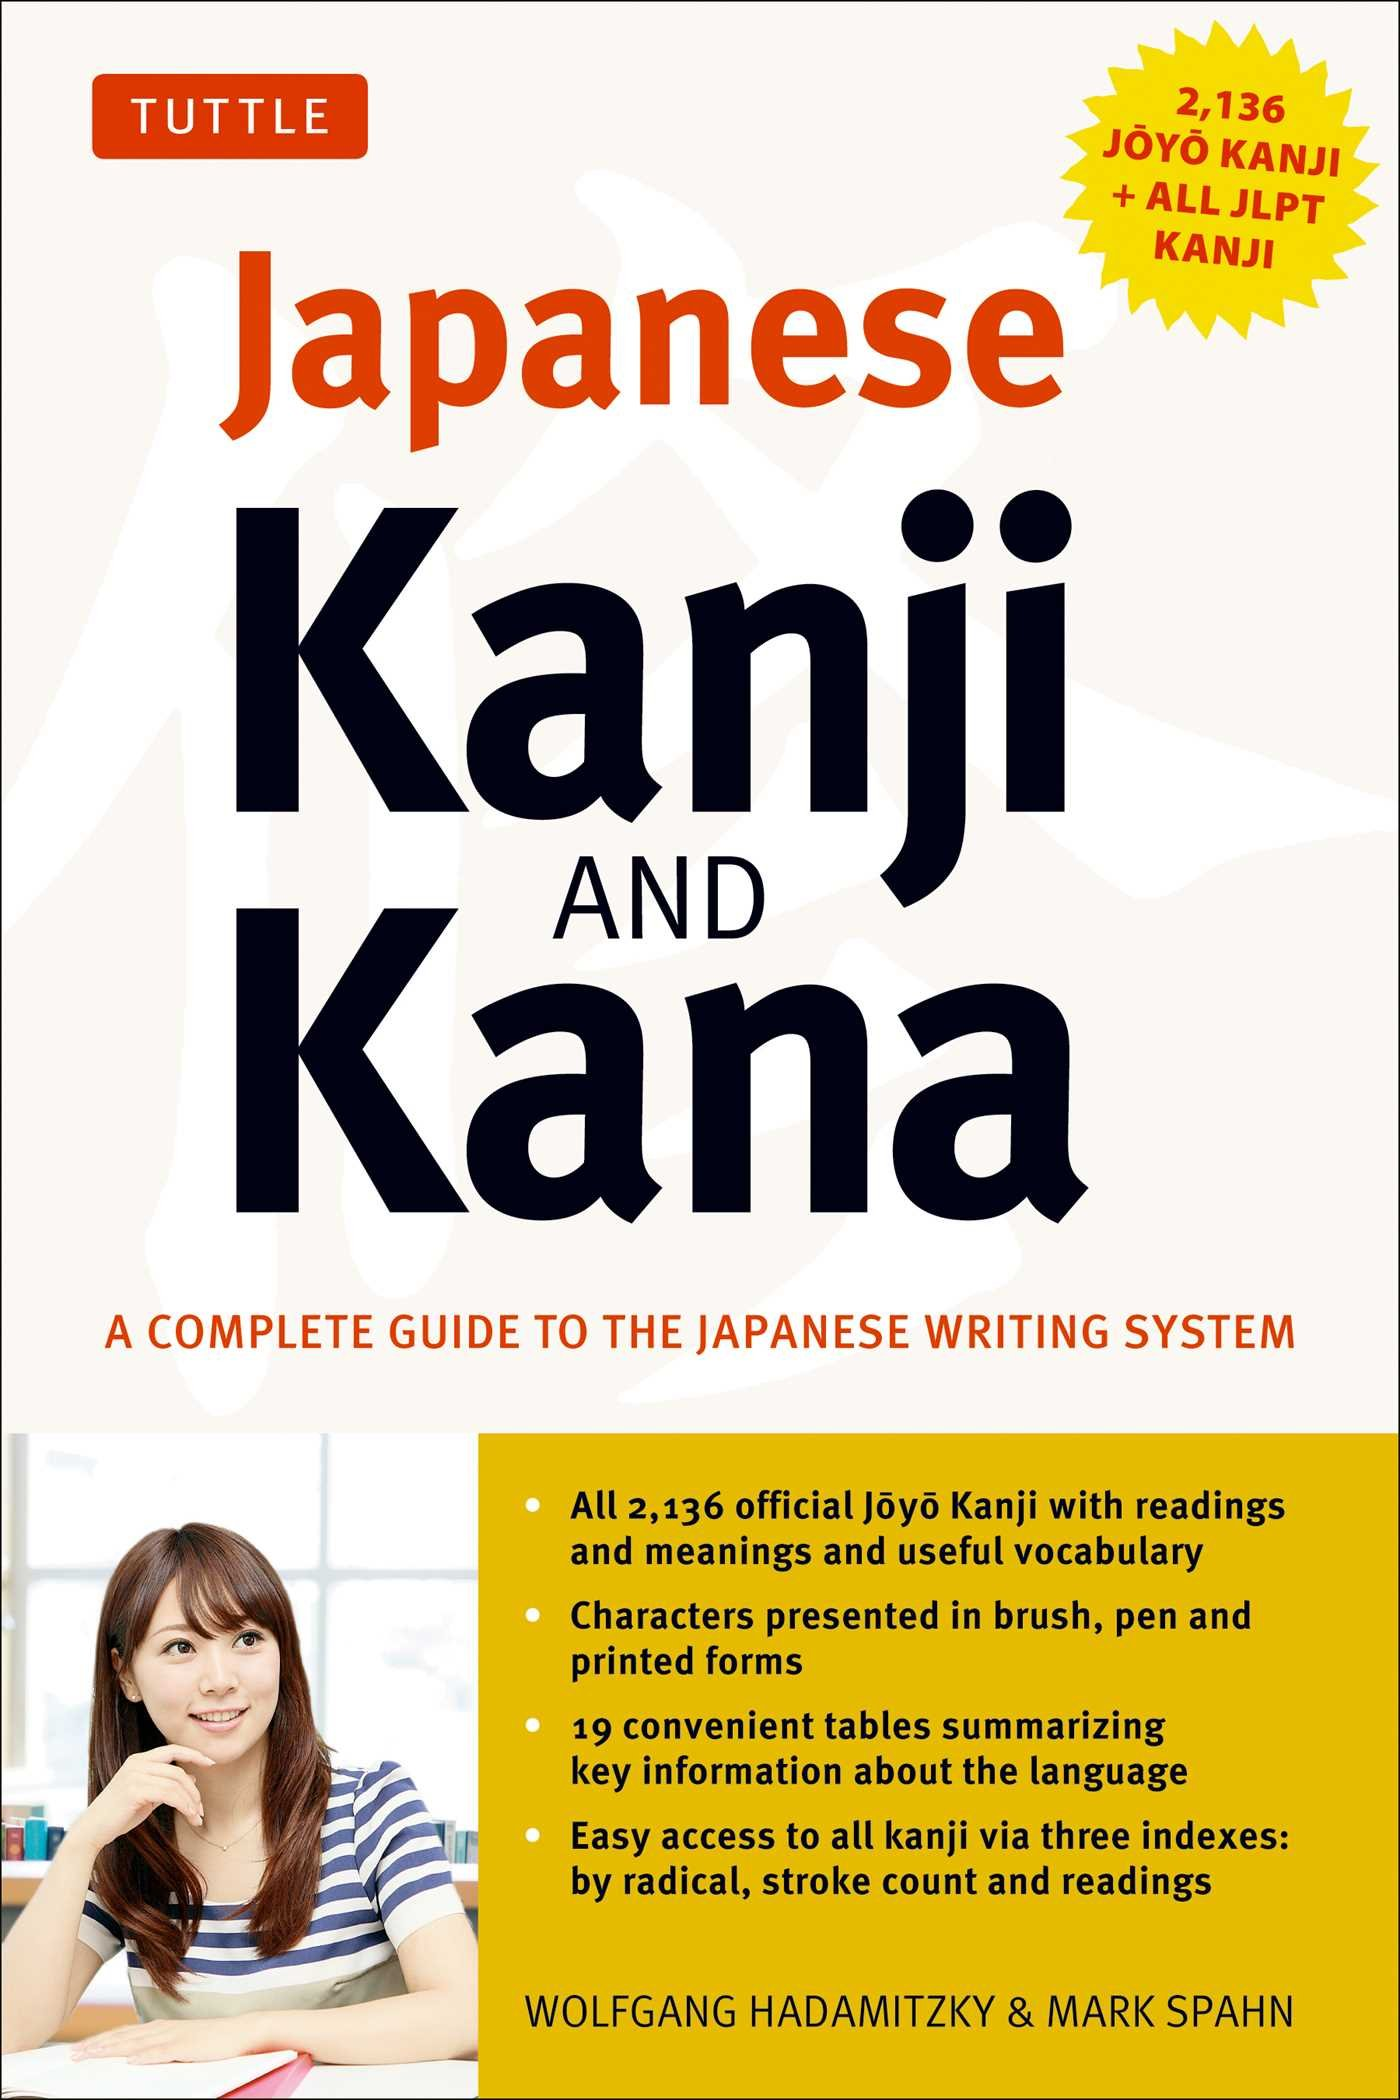 Amazon japanese kanji kana a complete guide to the amazon japanese kanji kana a complete guide to the japanese writing system 9784805311165 wolfgang hadamitzky mark spahn books biocorpaavc Choice Image